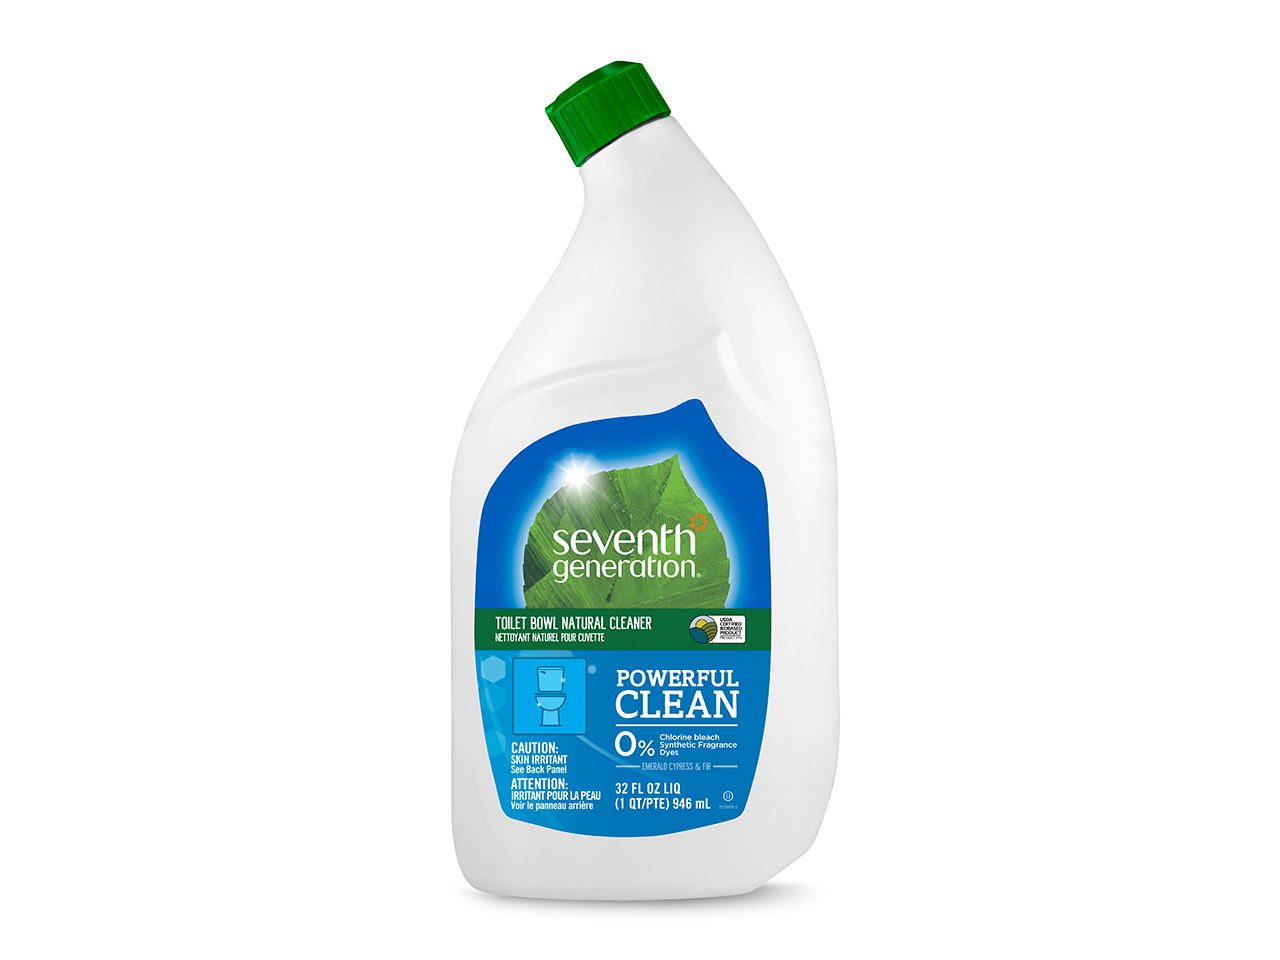 Eco-friendly cleaning products, Seventh Generation toilet bowl cleaner bottle